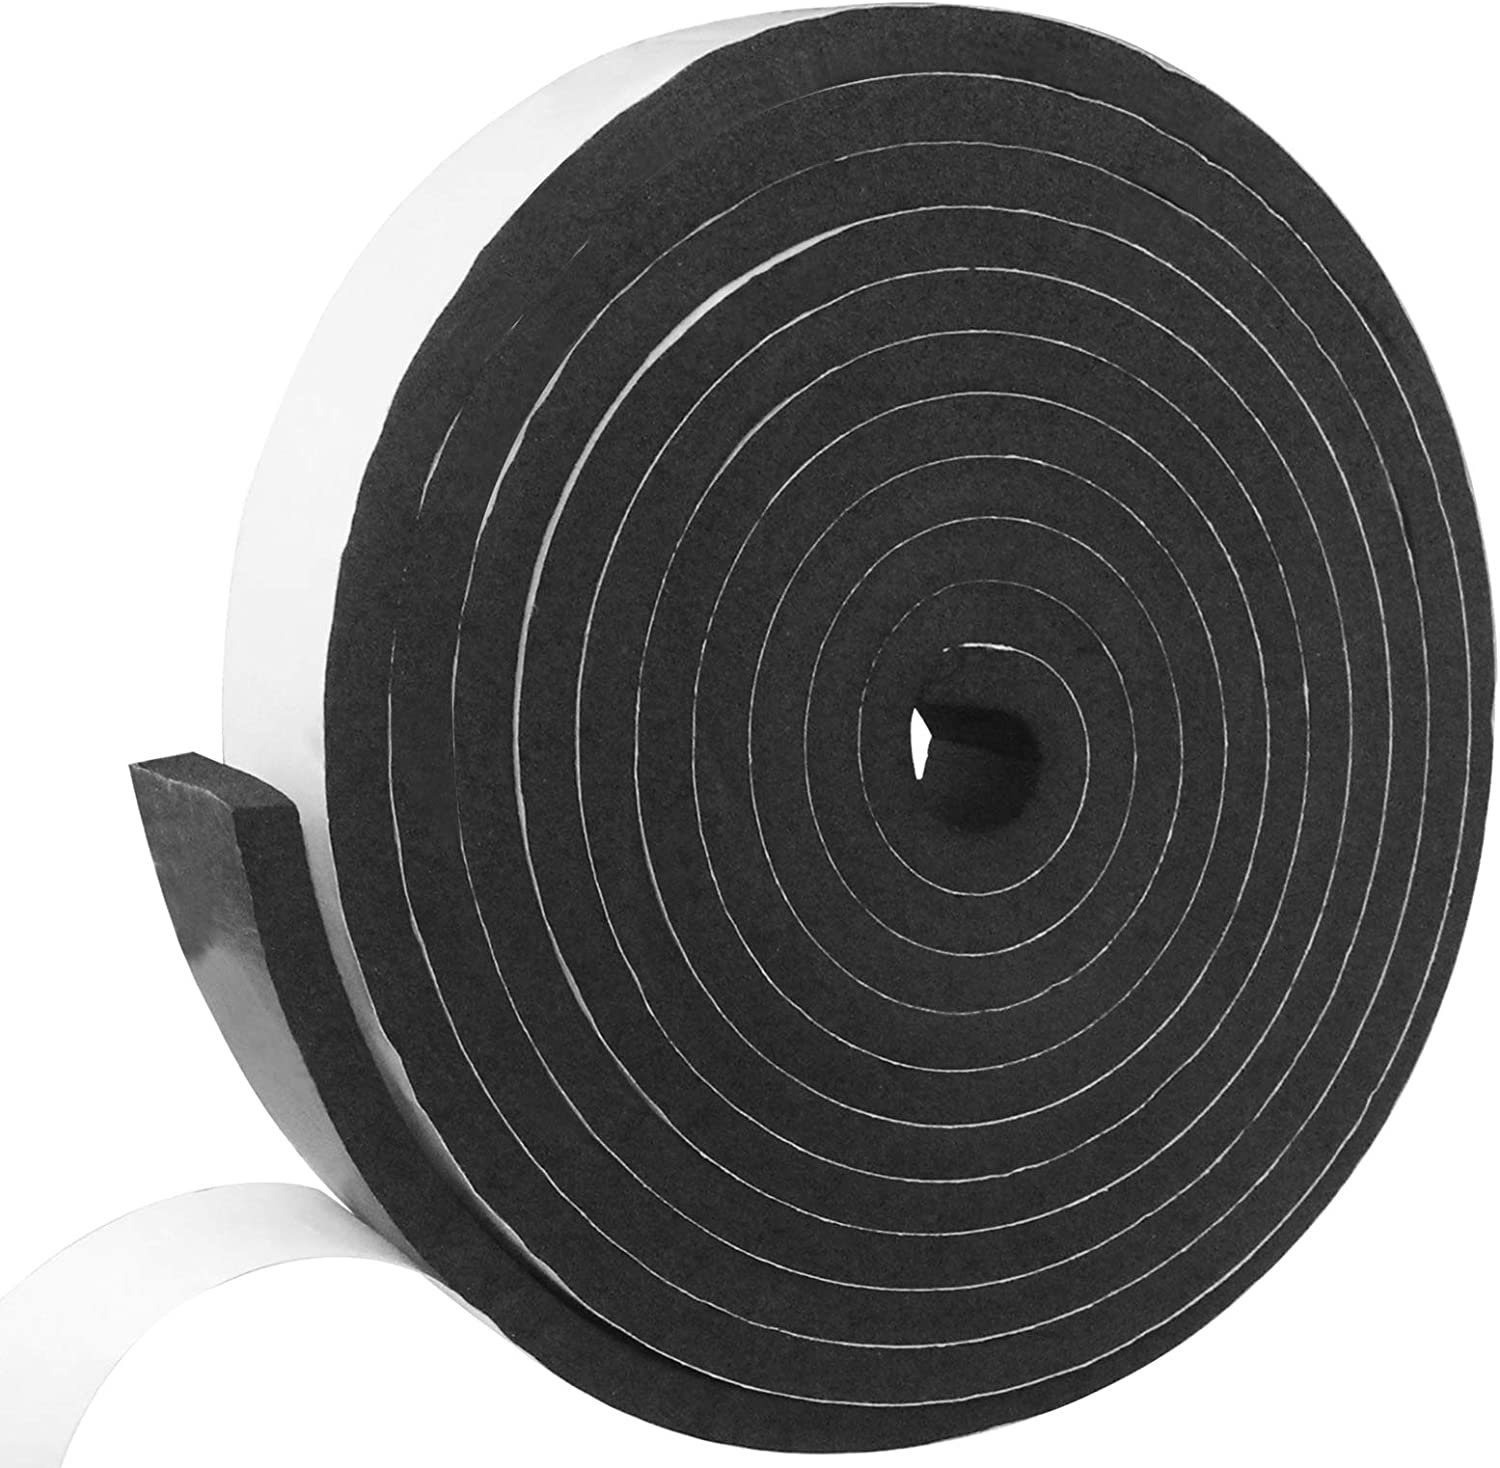 Weather Stripping Door Seal Strip Flame Retardant Slow Rebound Foam Insulation Tape Self Adhesive for Doors and Windows (W:1 in x T:2/5 in x L:16 Ft)